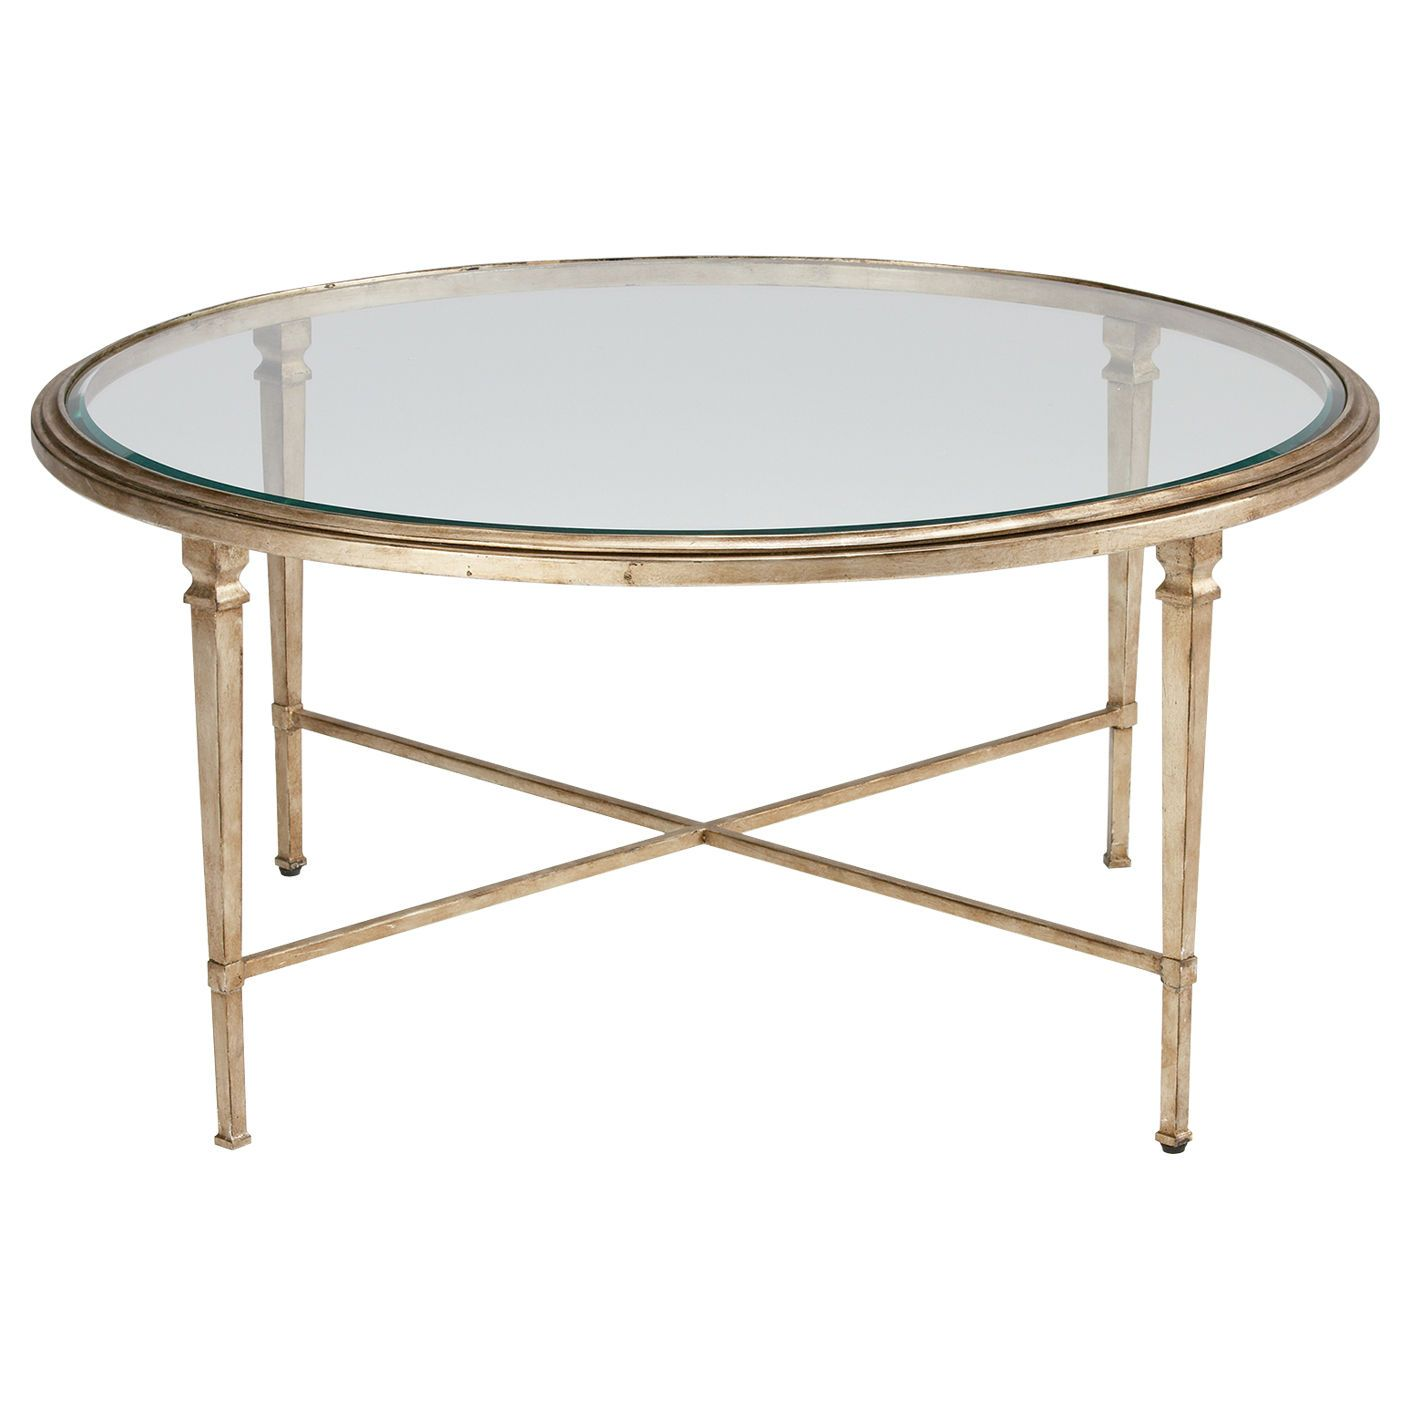 Heron round coffee table ethan allen us 679 aoj pinterest heron round coffee table ethan allen us 679 geotapseo Images